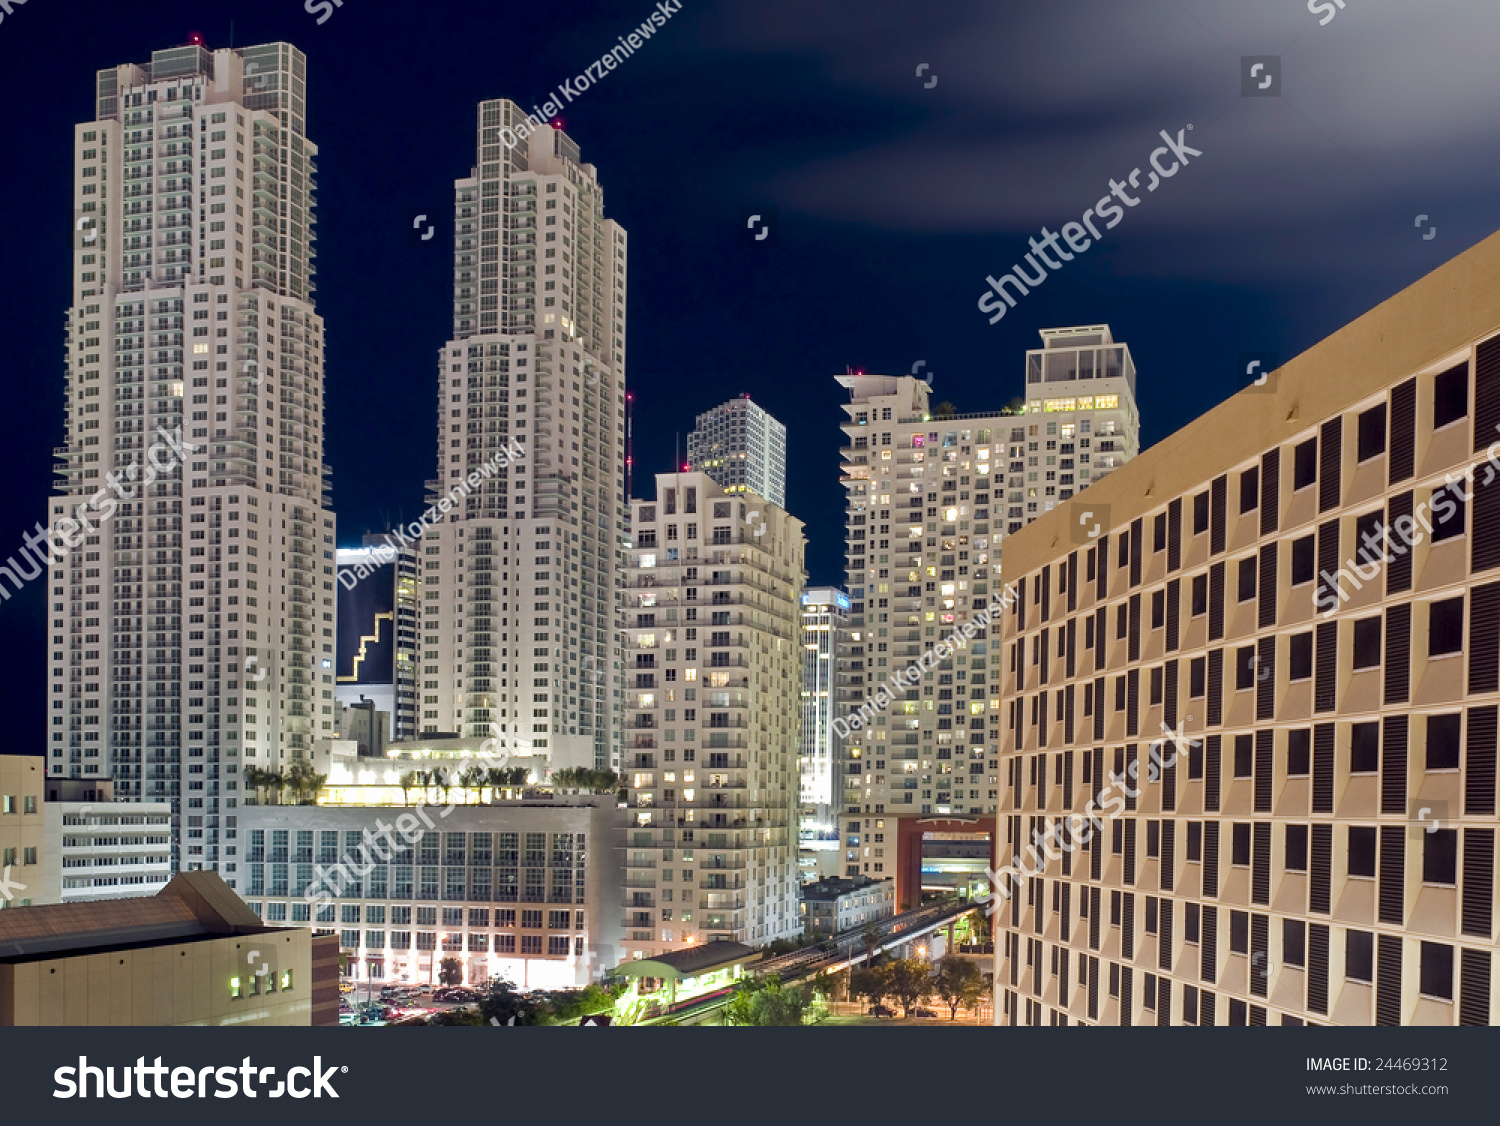 Apartment Complex In Downtown Miami At Night, Florida ...